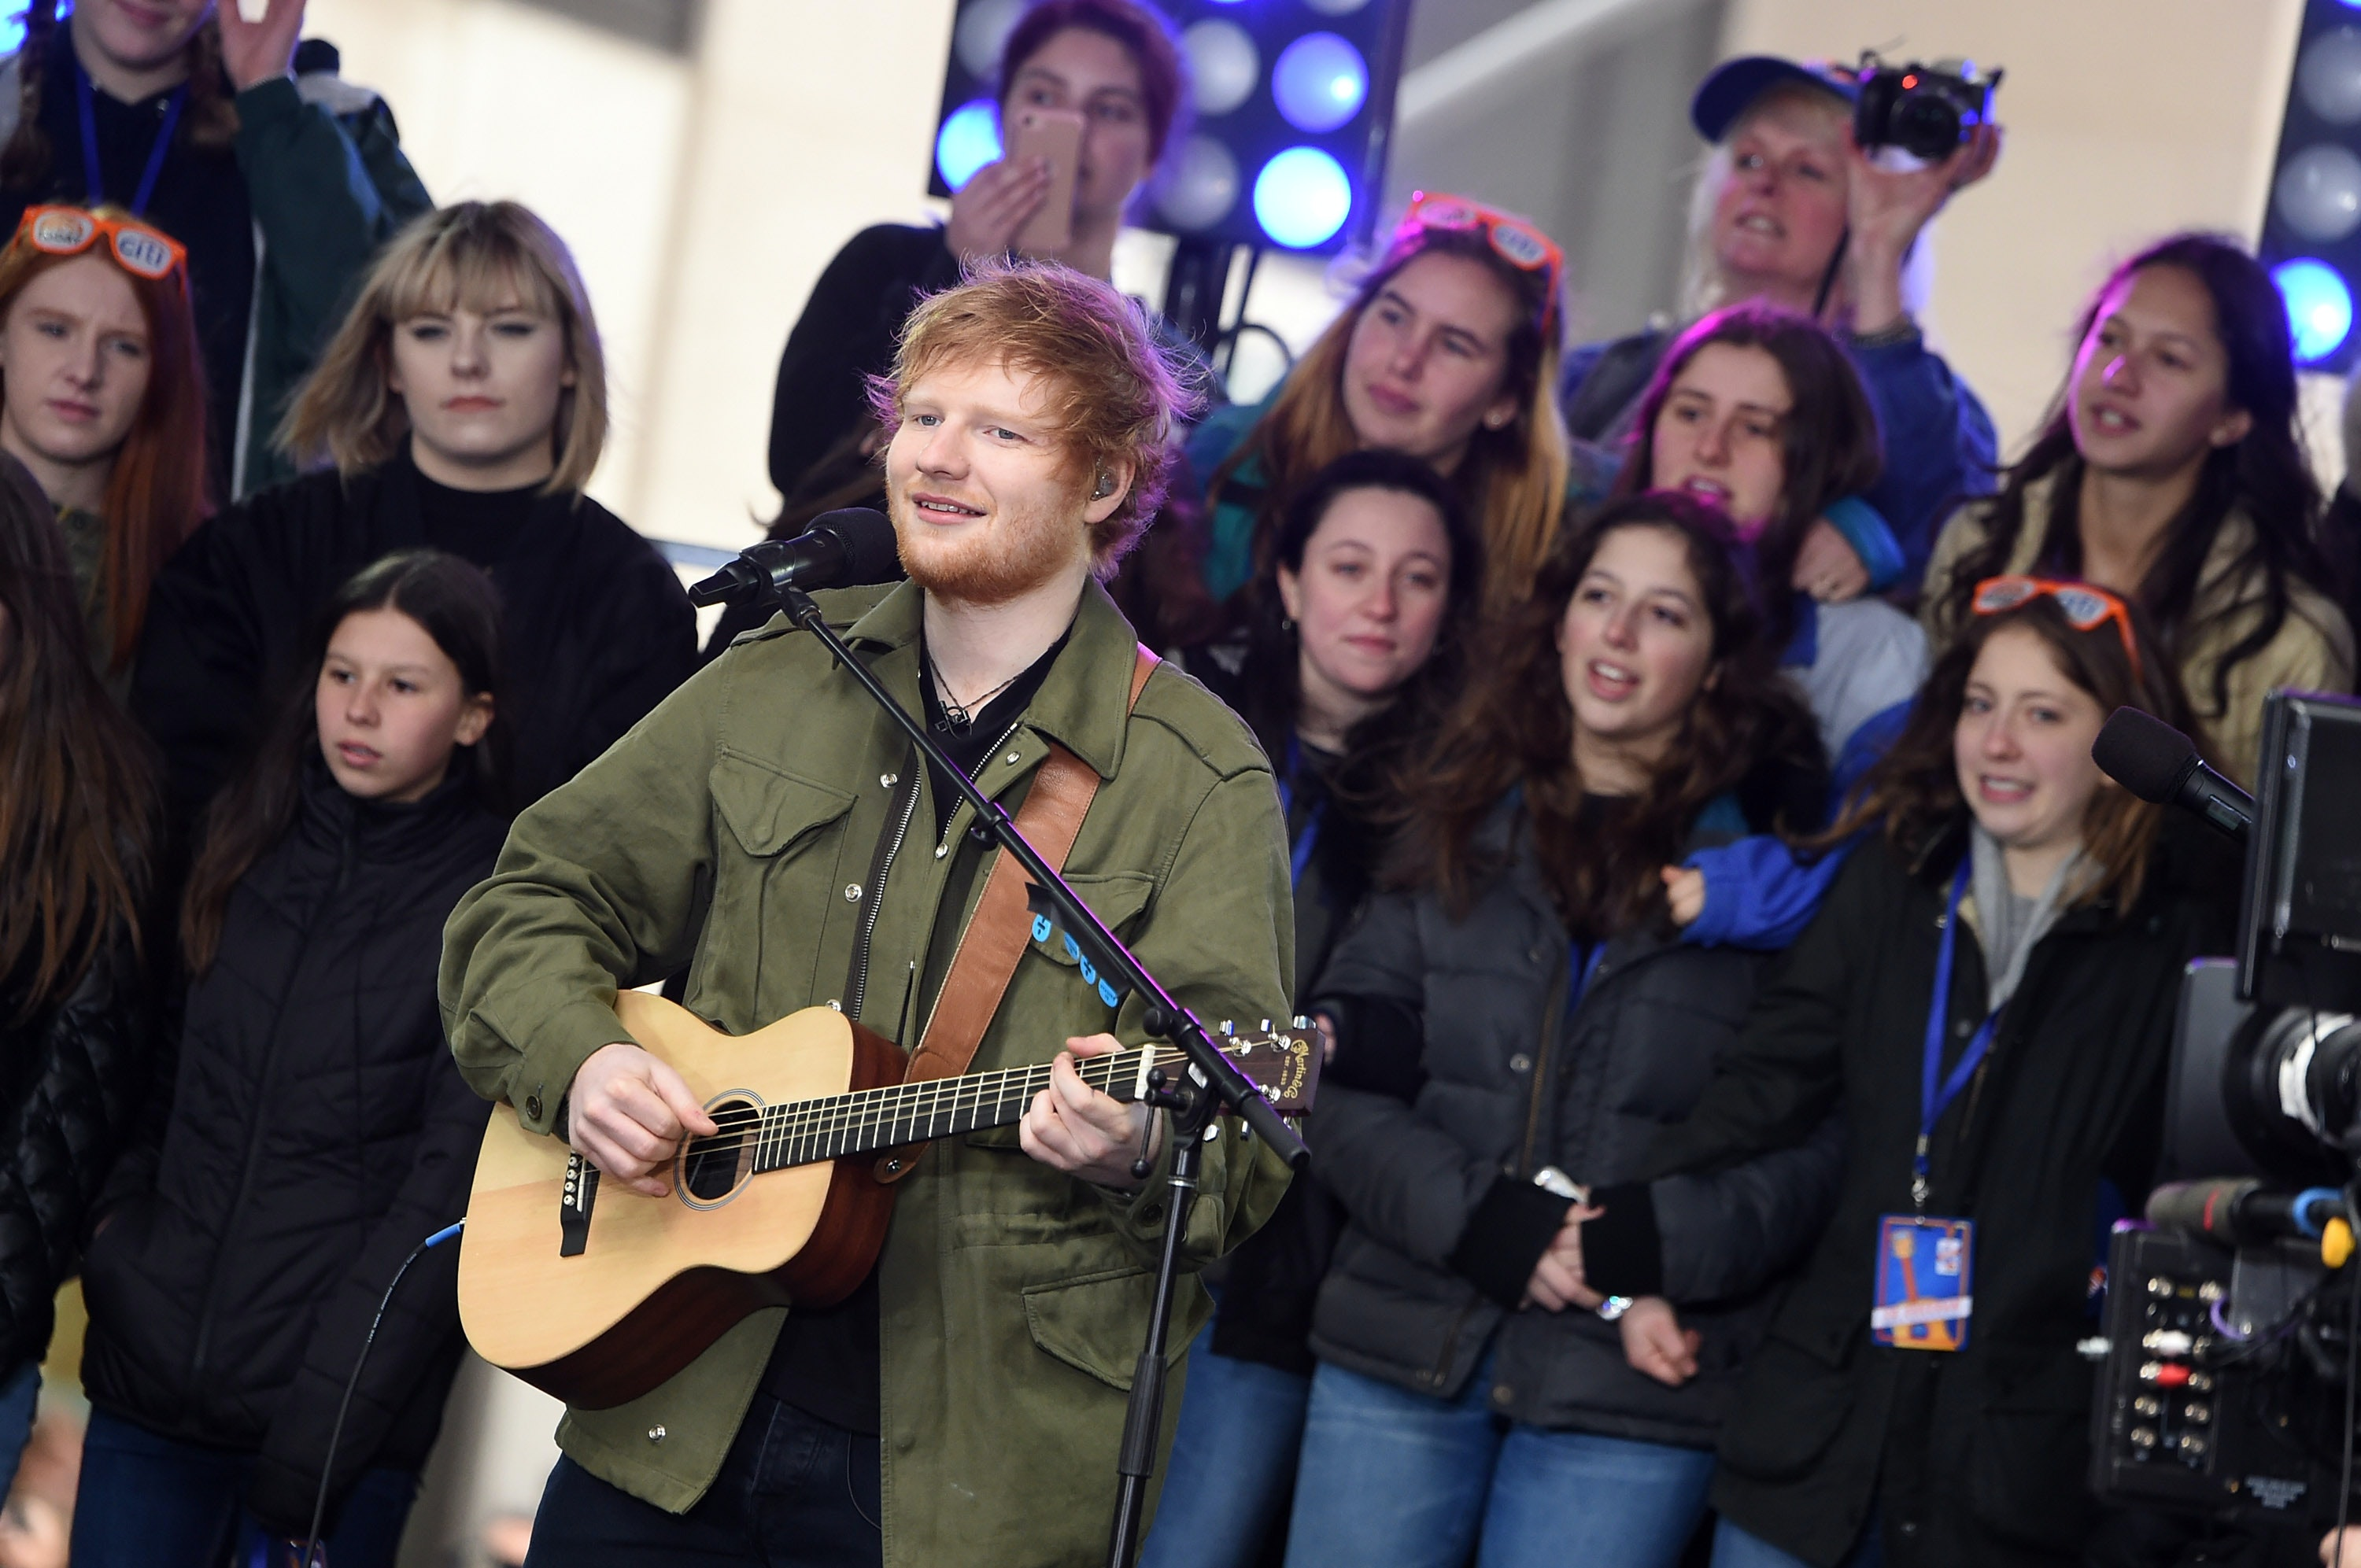 Ed Sheeran Lands Guest Spot On Season 7 Of 'Game of Thrones'